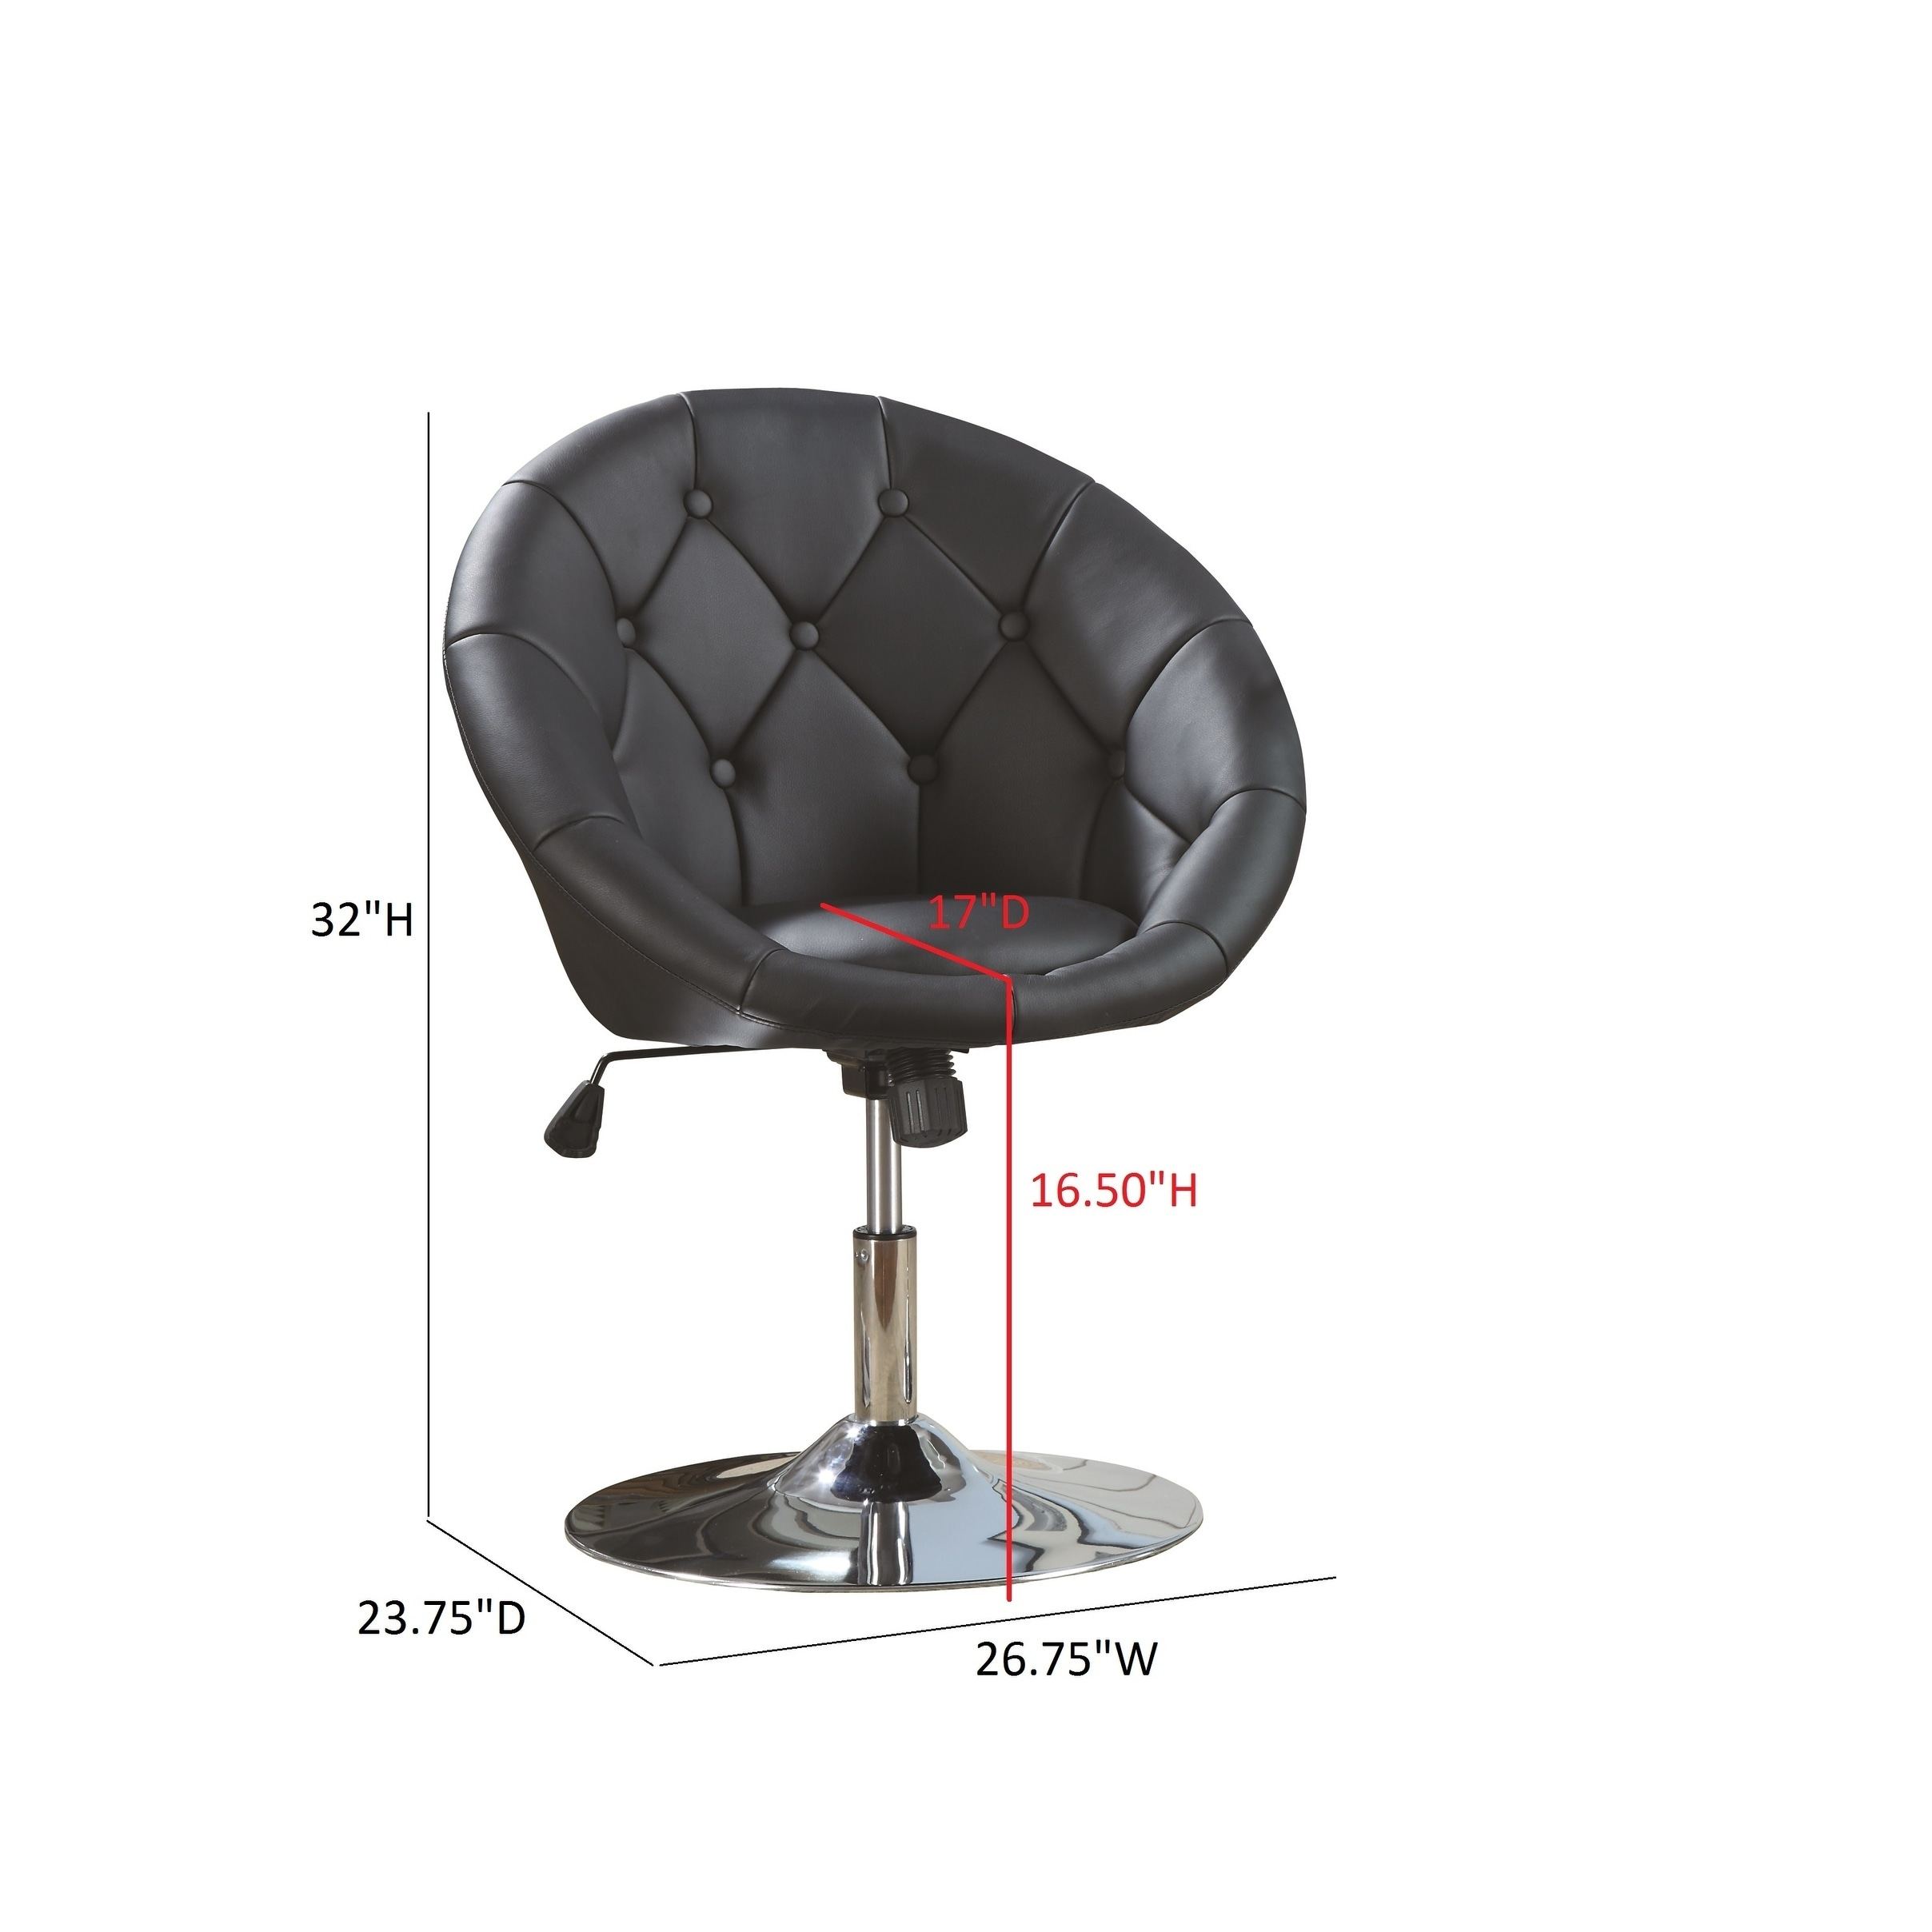 Magnificent Coaster Company Button Tufted Viny Swivel Chair 26 75 X 23 75 X 32 Ncnpc Chair Design For Home Ncnpcorg